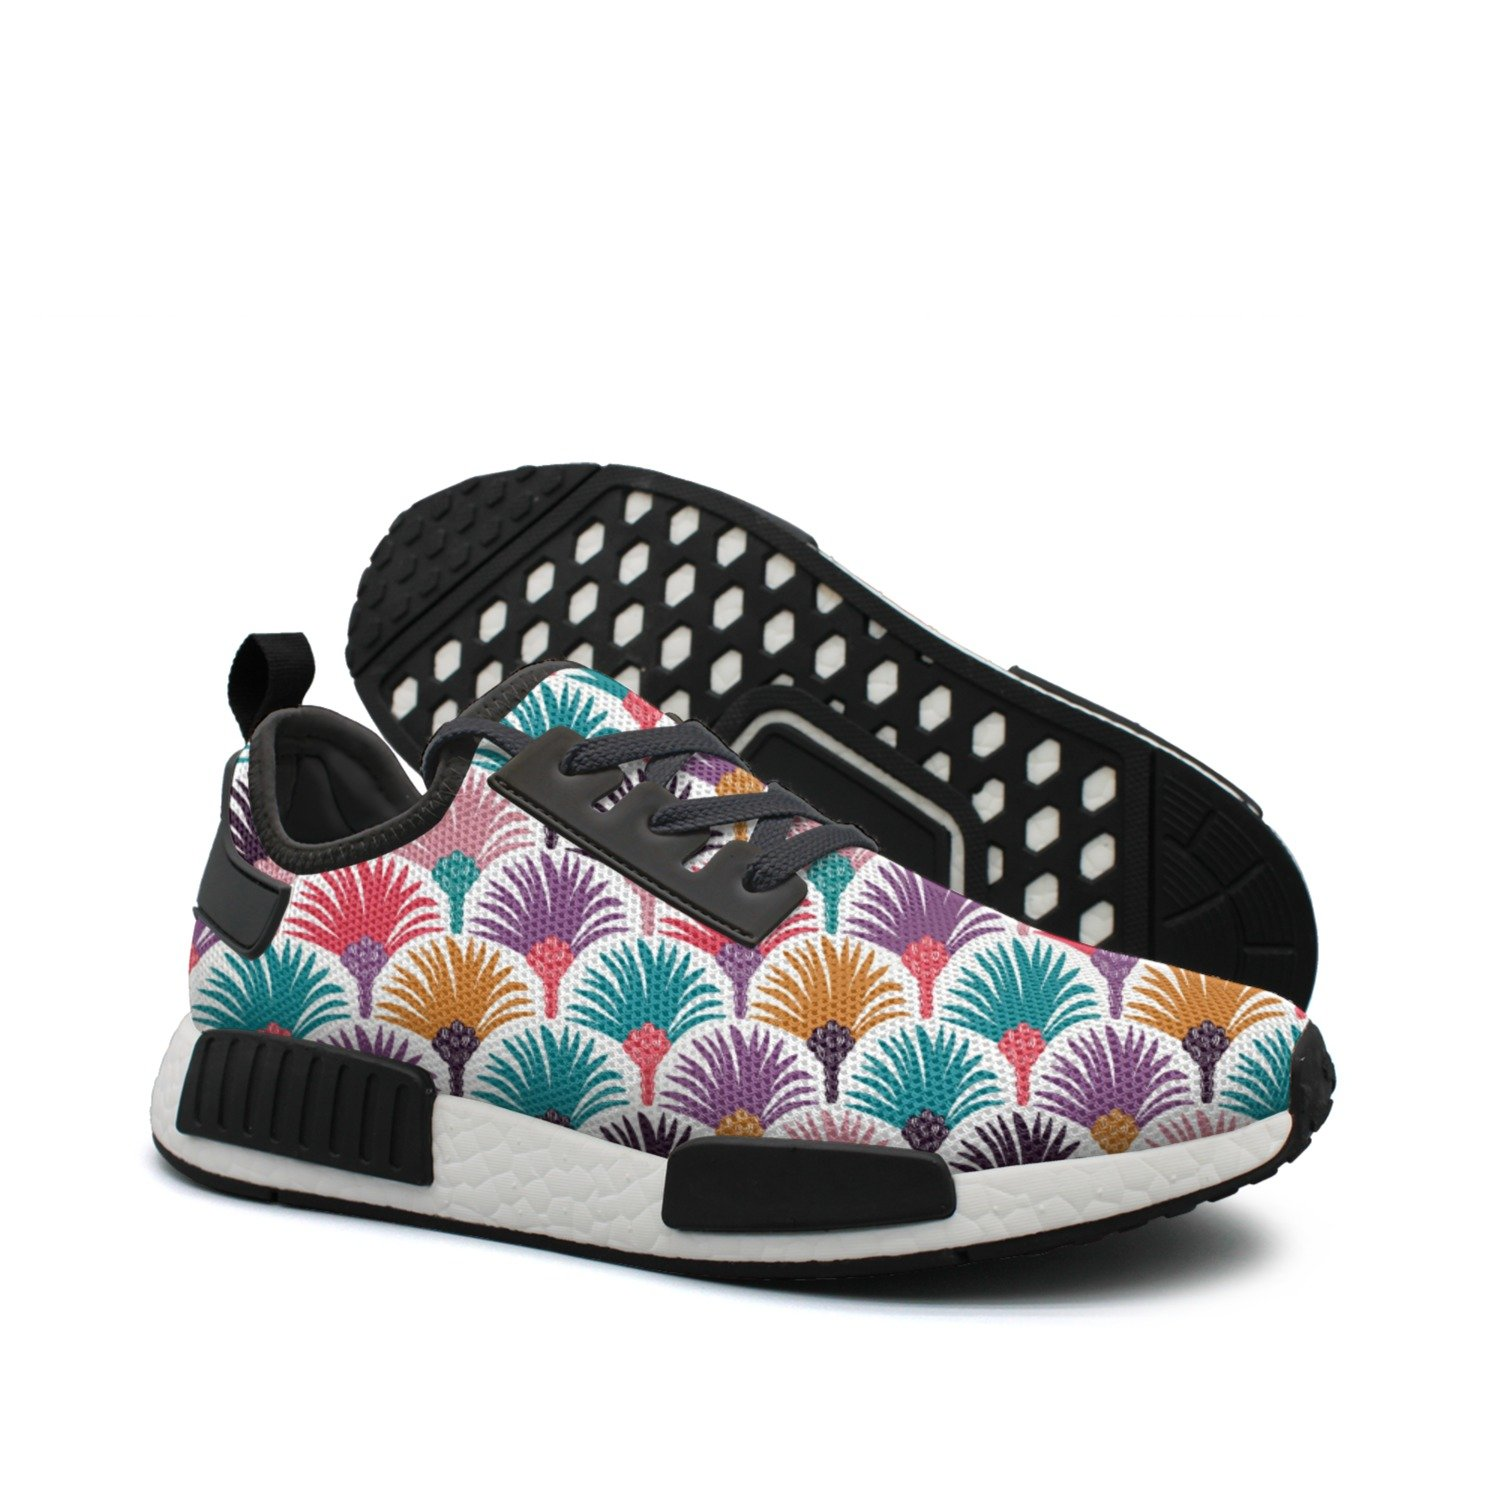 Women's colorful Camping Royal Palm Tree Hunting Casual Running shoes